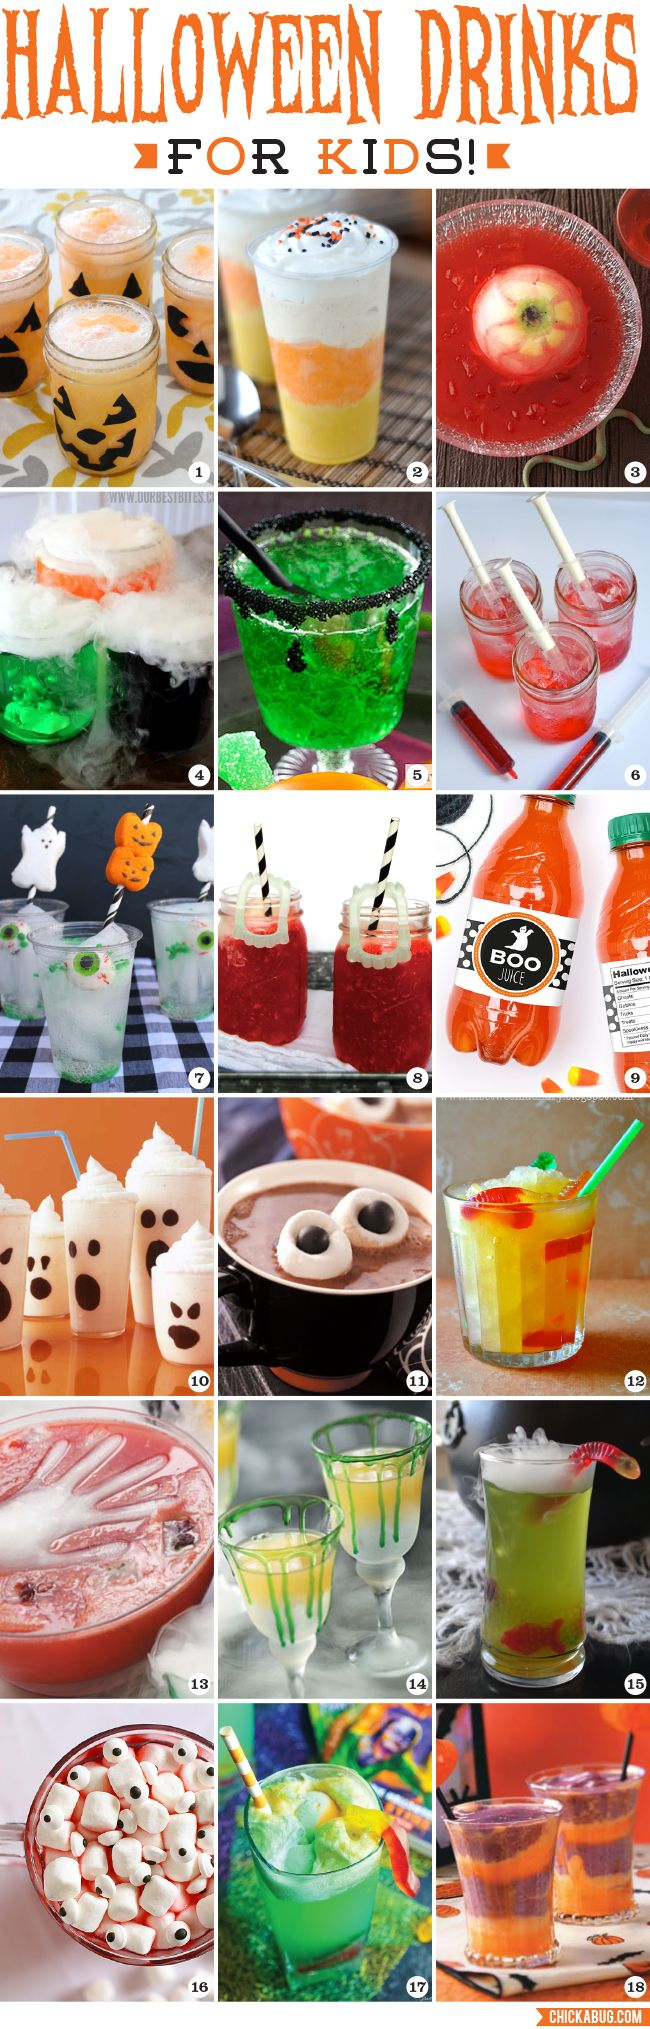 halloween drinks for kids - Halloween Themed Alcoholic Shots